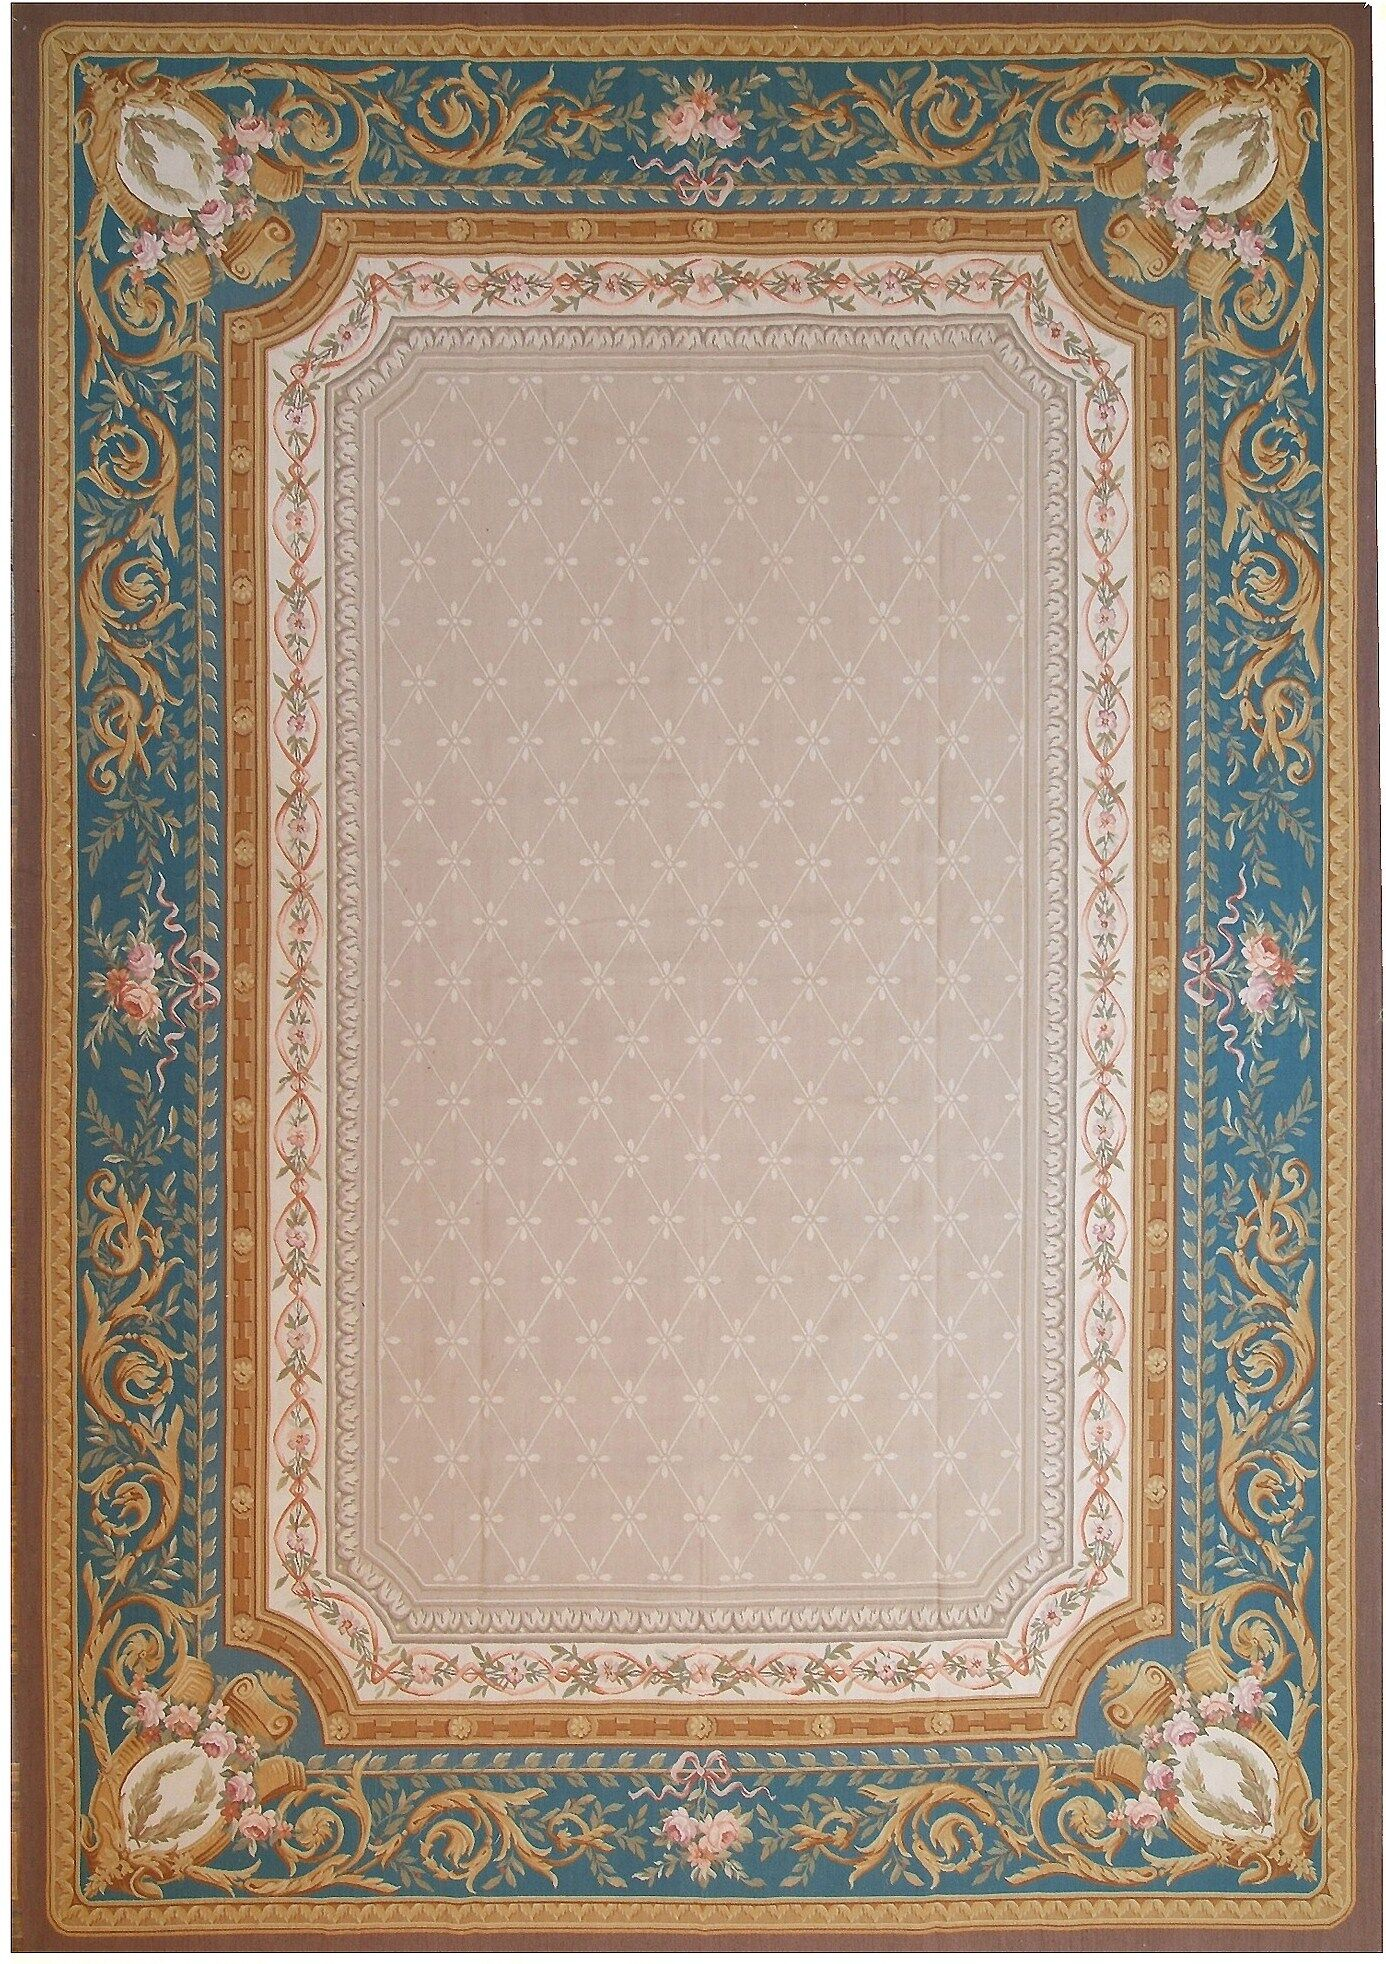 Aubusson Hand-Woven Wool Beige/Blue/Brown Area Rug